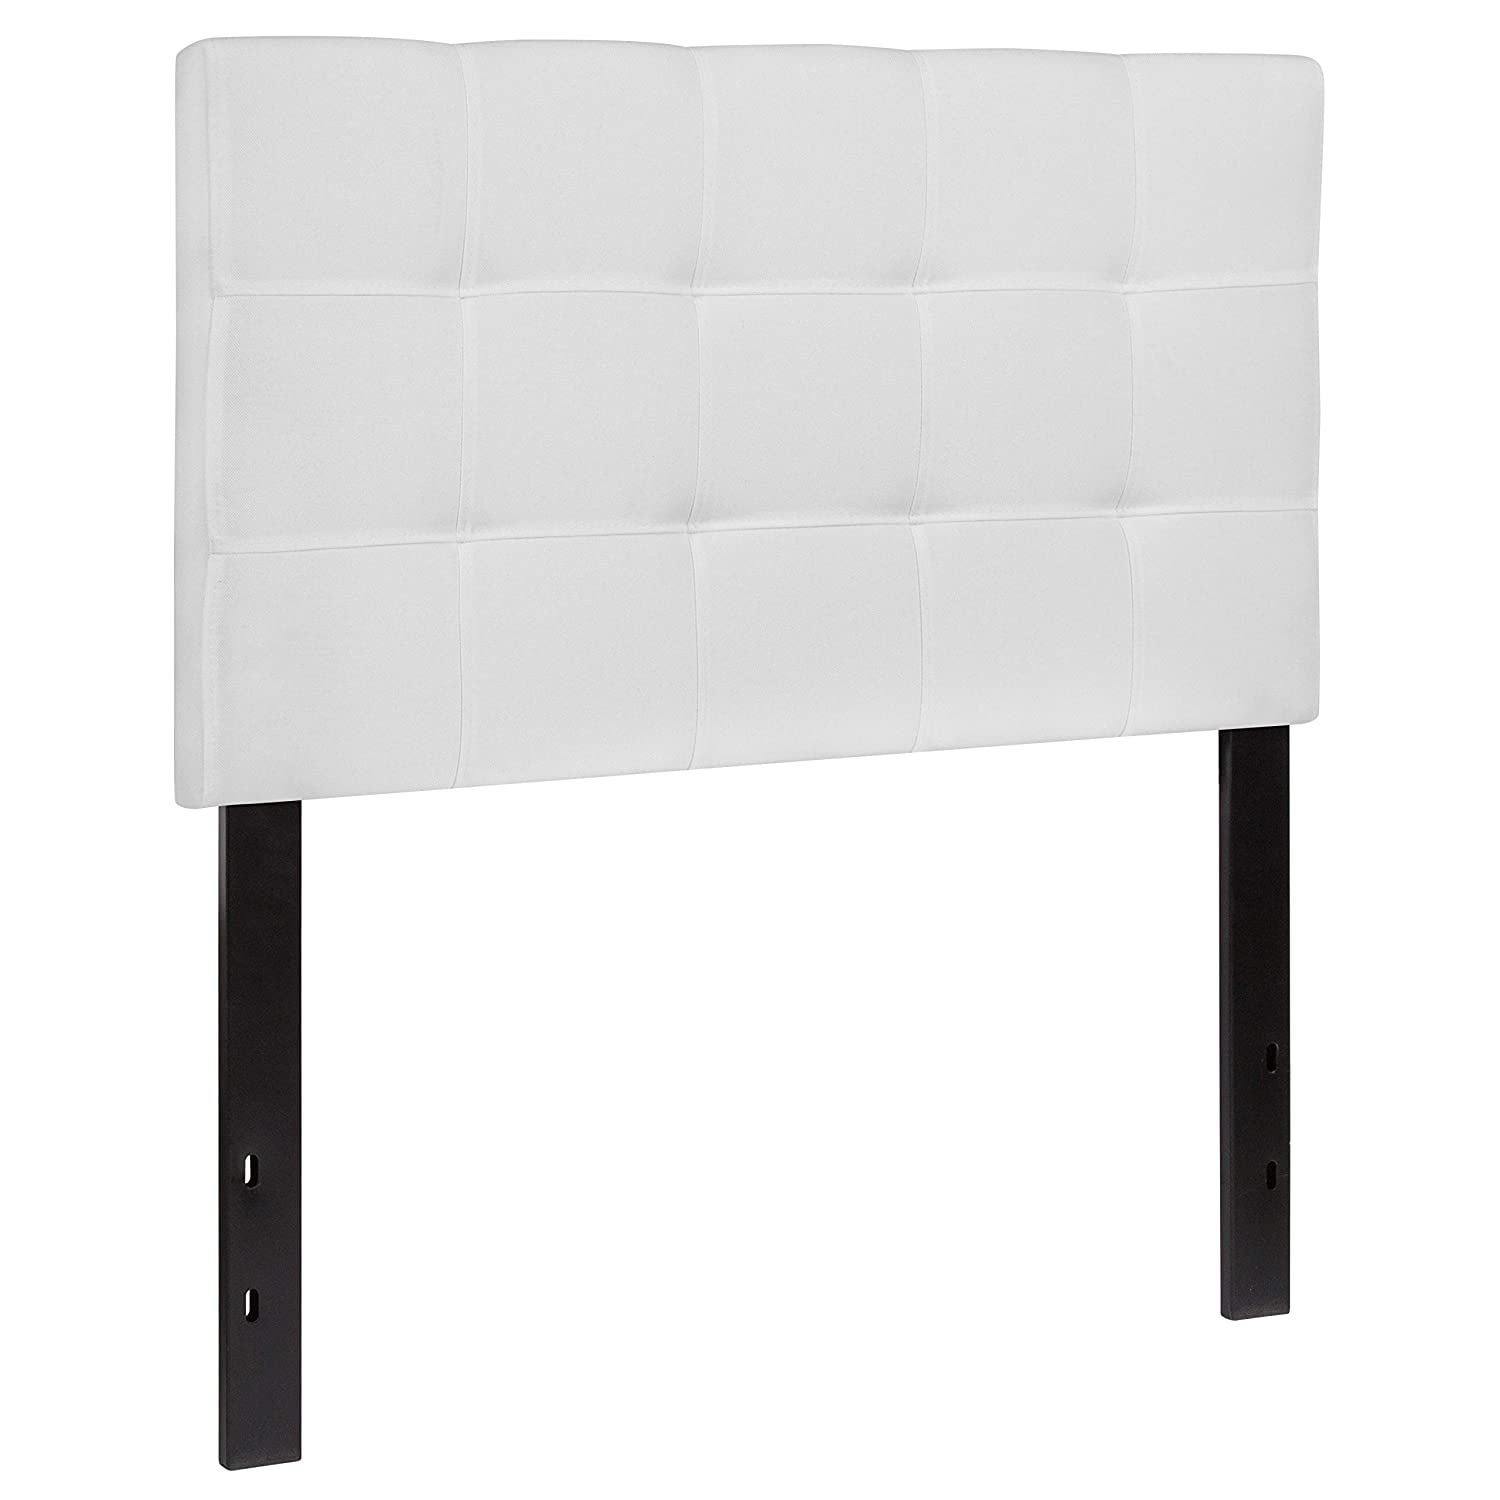 Flash Furniture Bedford Tufted Upholstered Twin Size Headboard in White Fabric